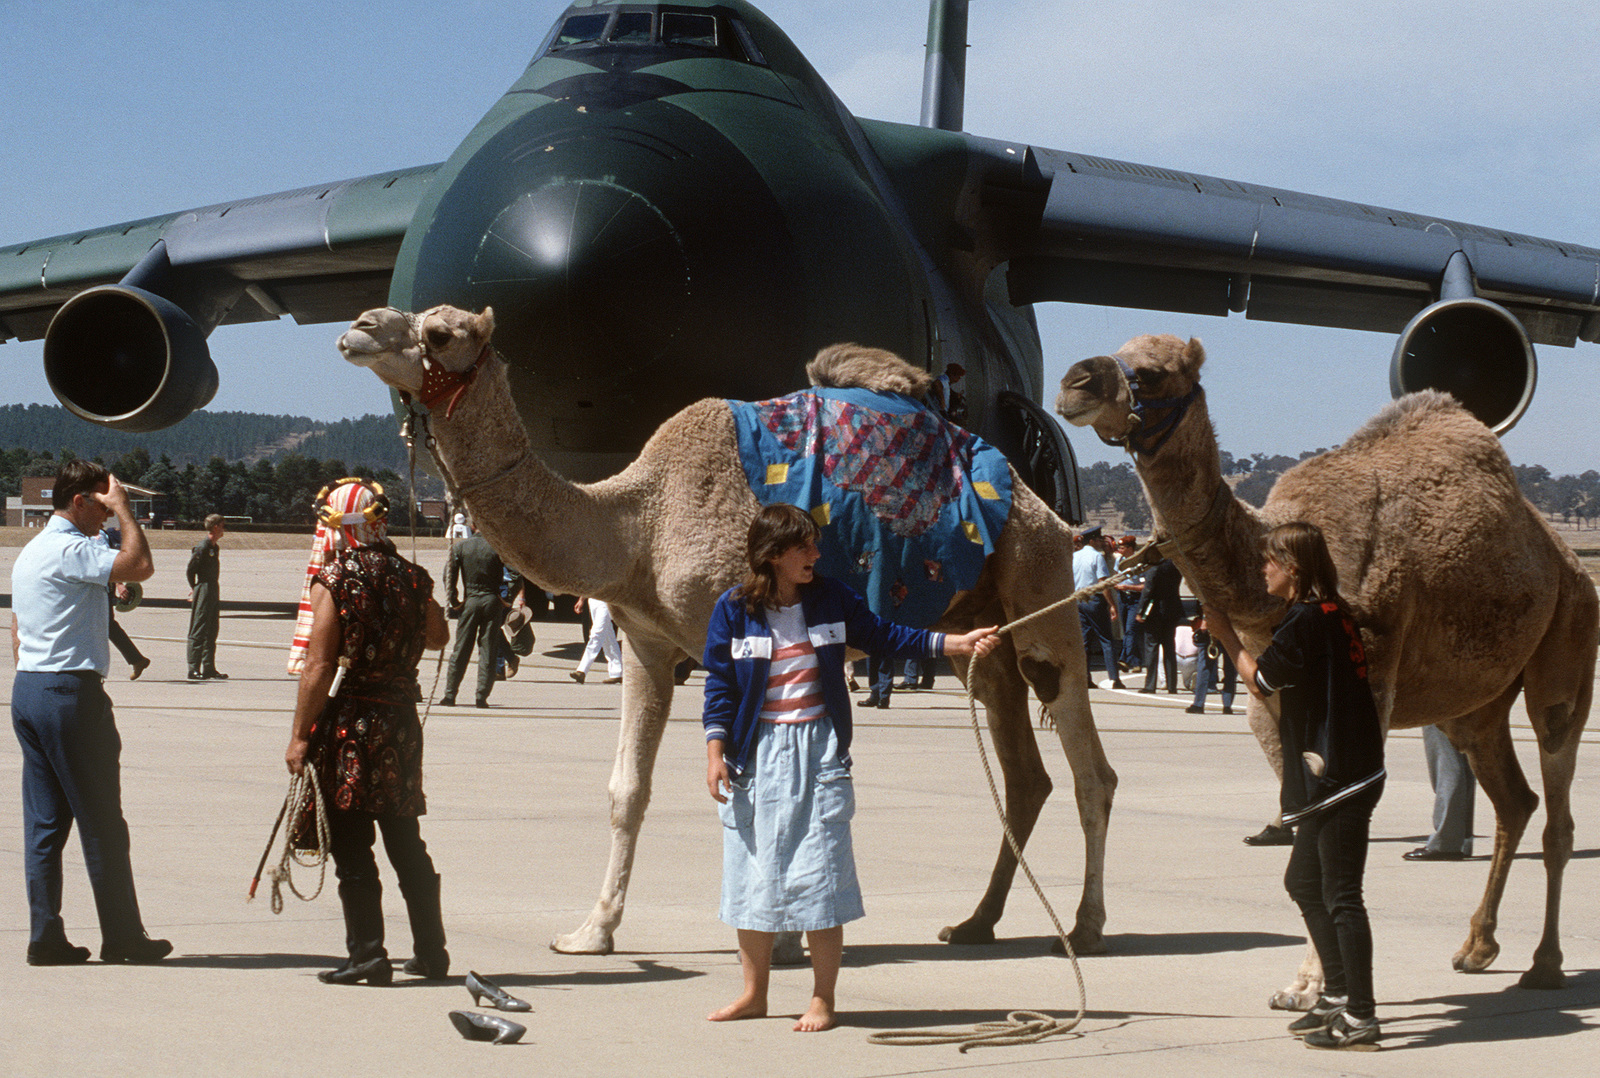 Circus members with camels welcome Australian troops upon their arrival at  the Fairbairn air force base